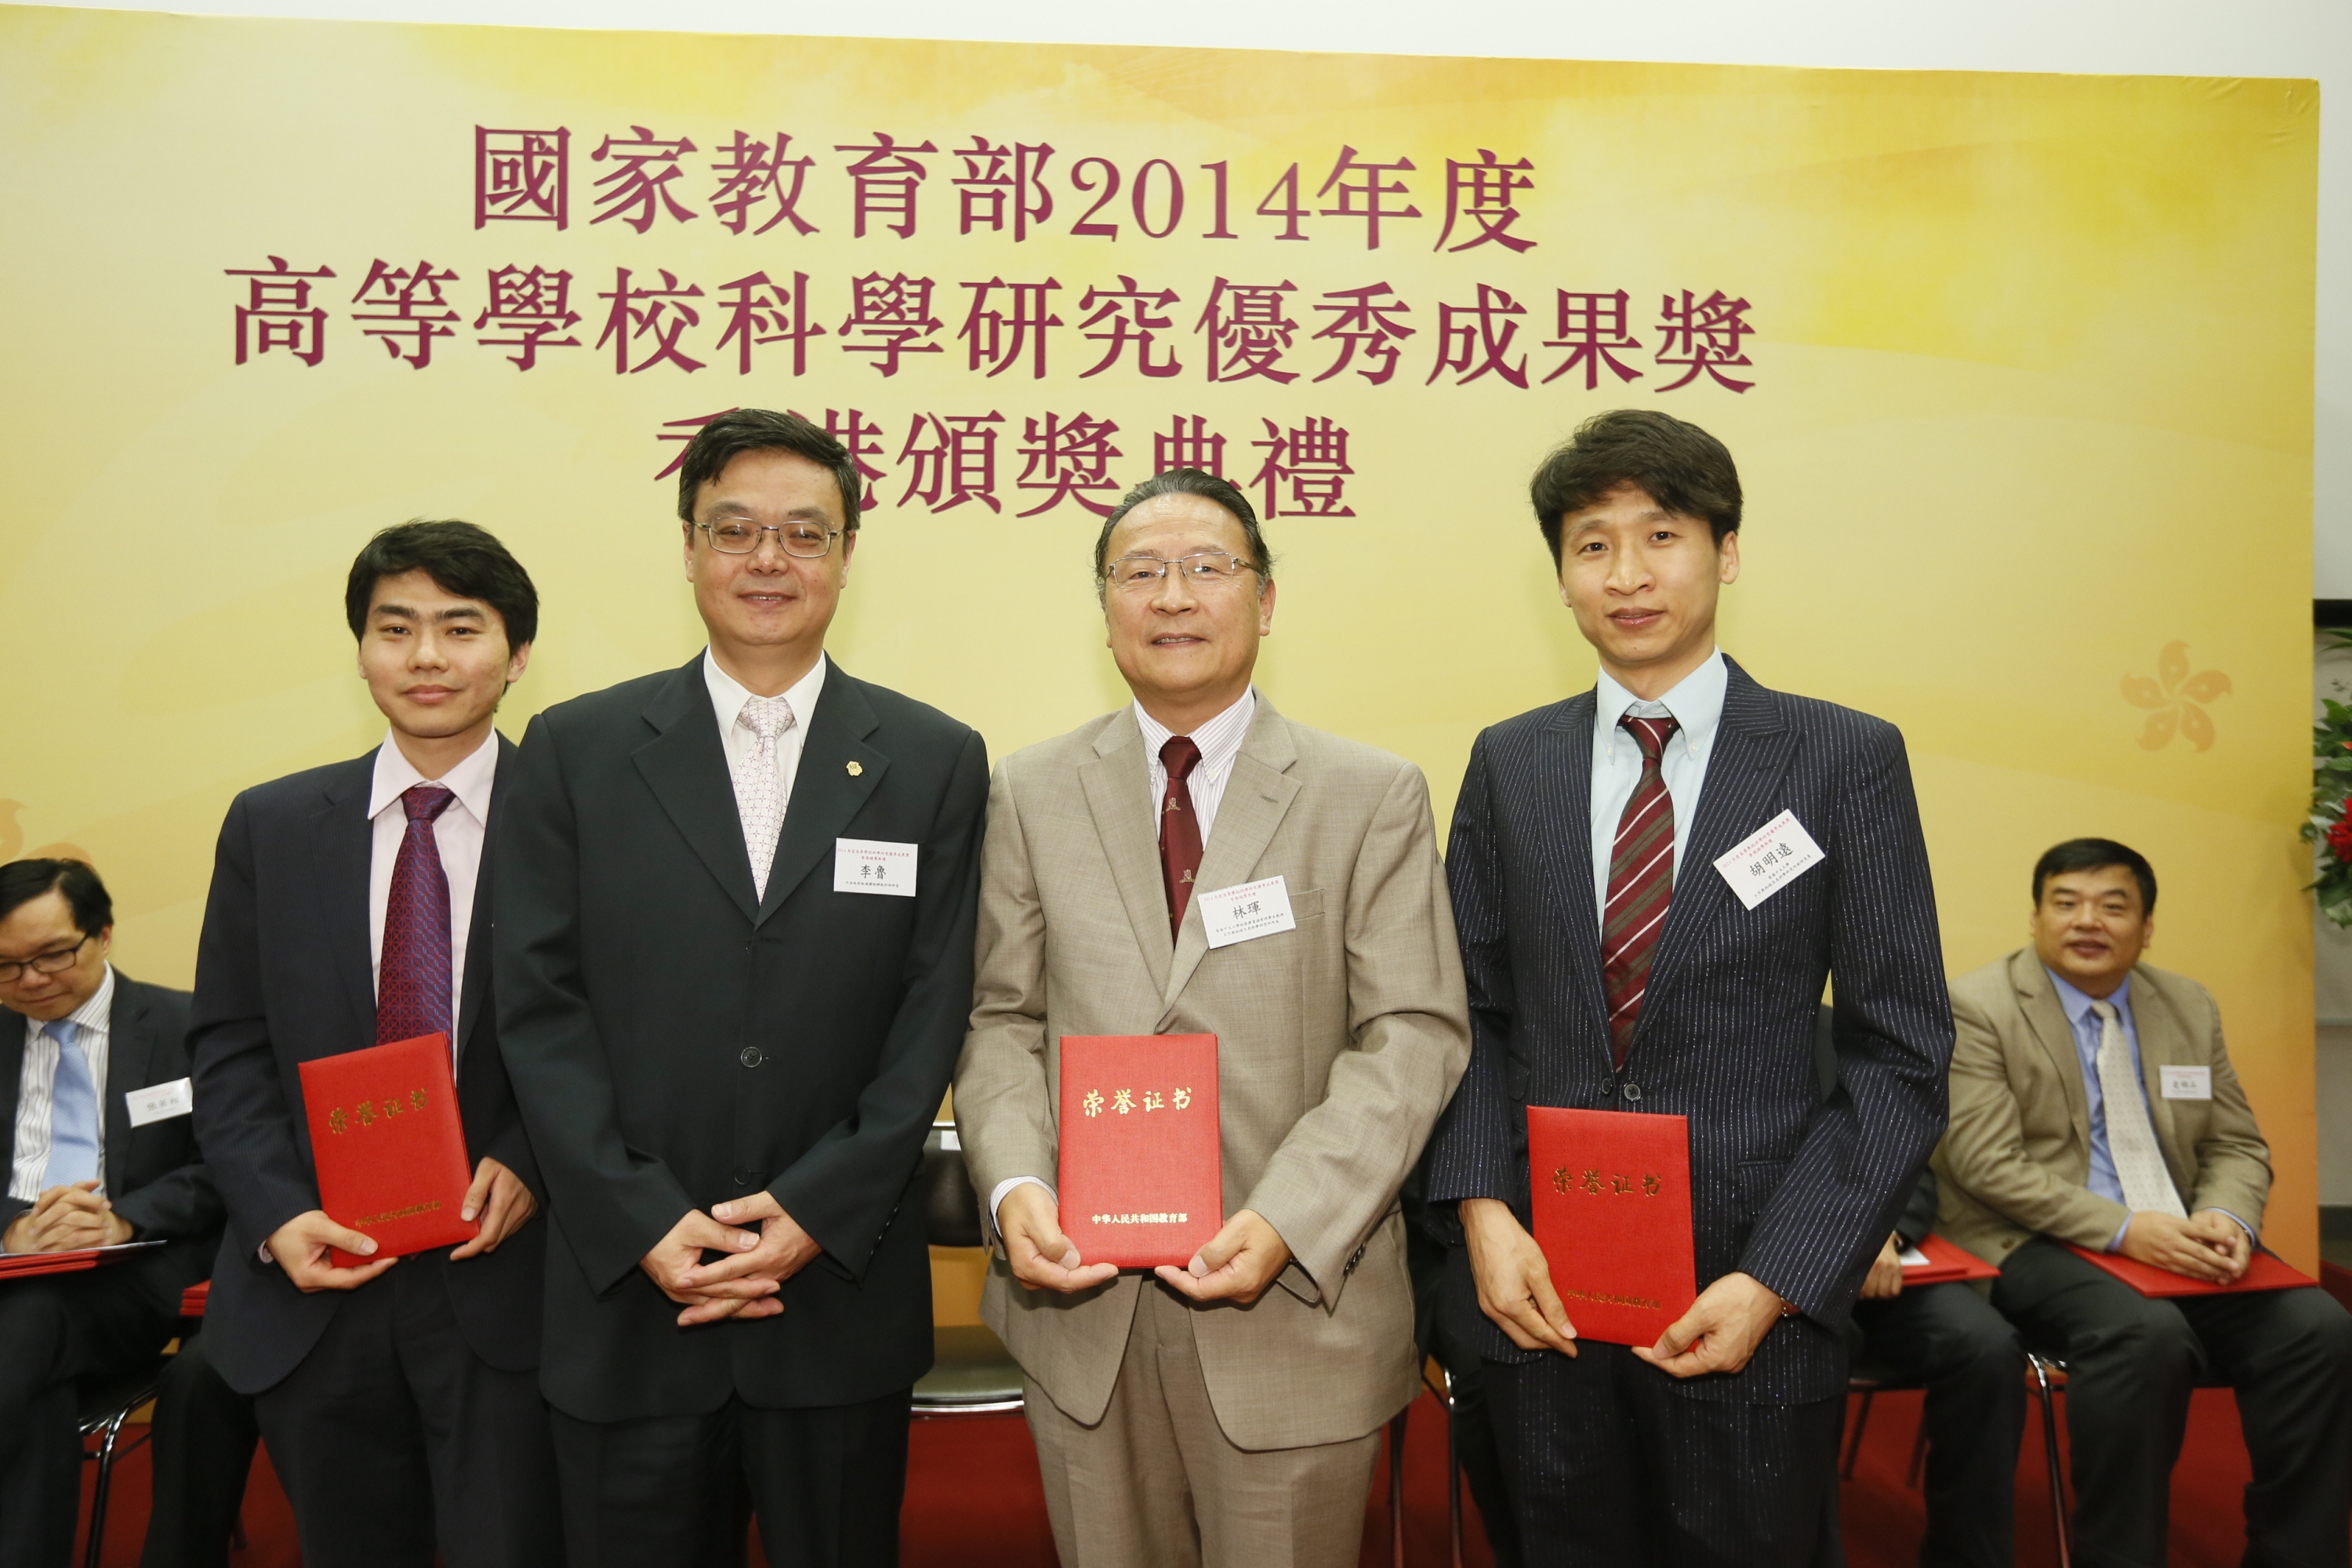 Prof. Hui Lin (2nd right) and his research team receive their award certificates from Prof. Lu Li (2nd left).